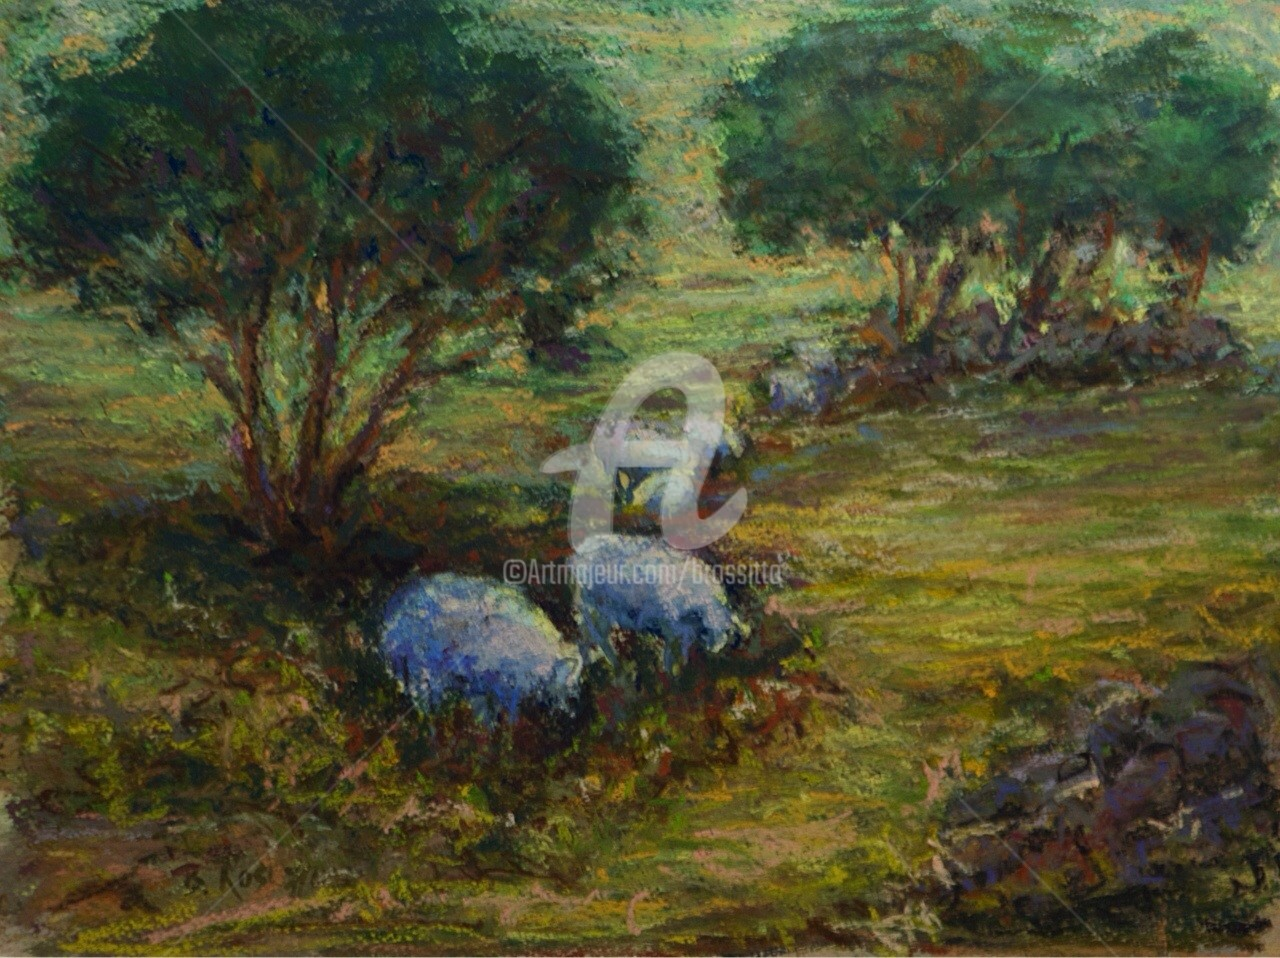 B.Rossitto - Pastoral Landscape with Sheep pastel over watercolor.